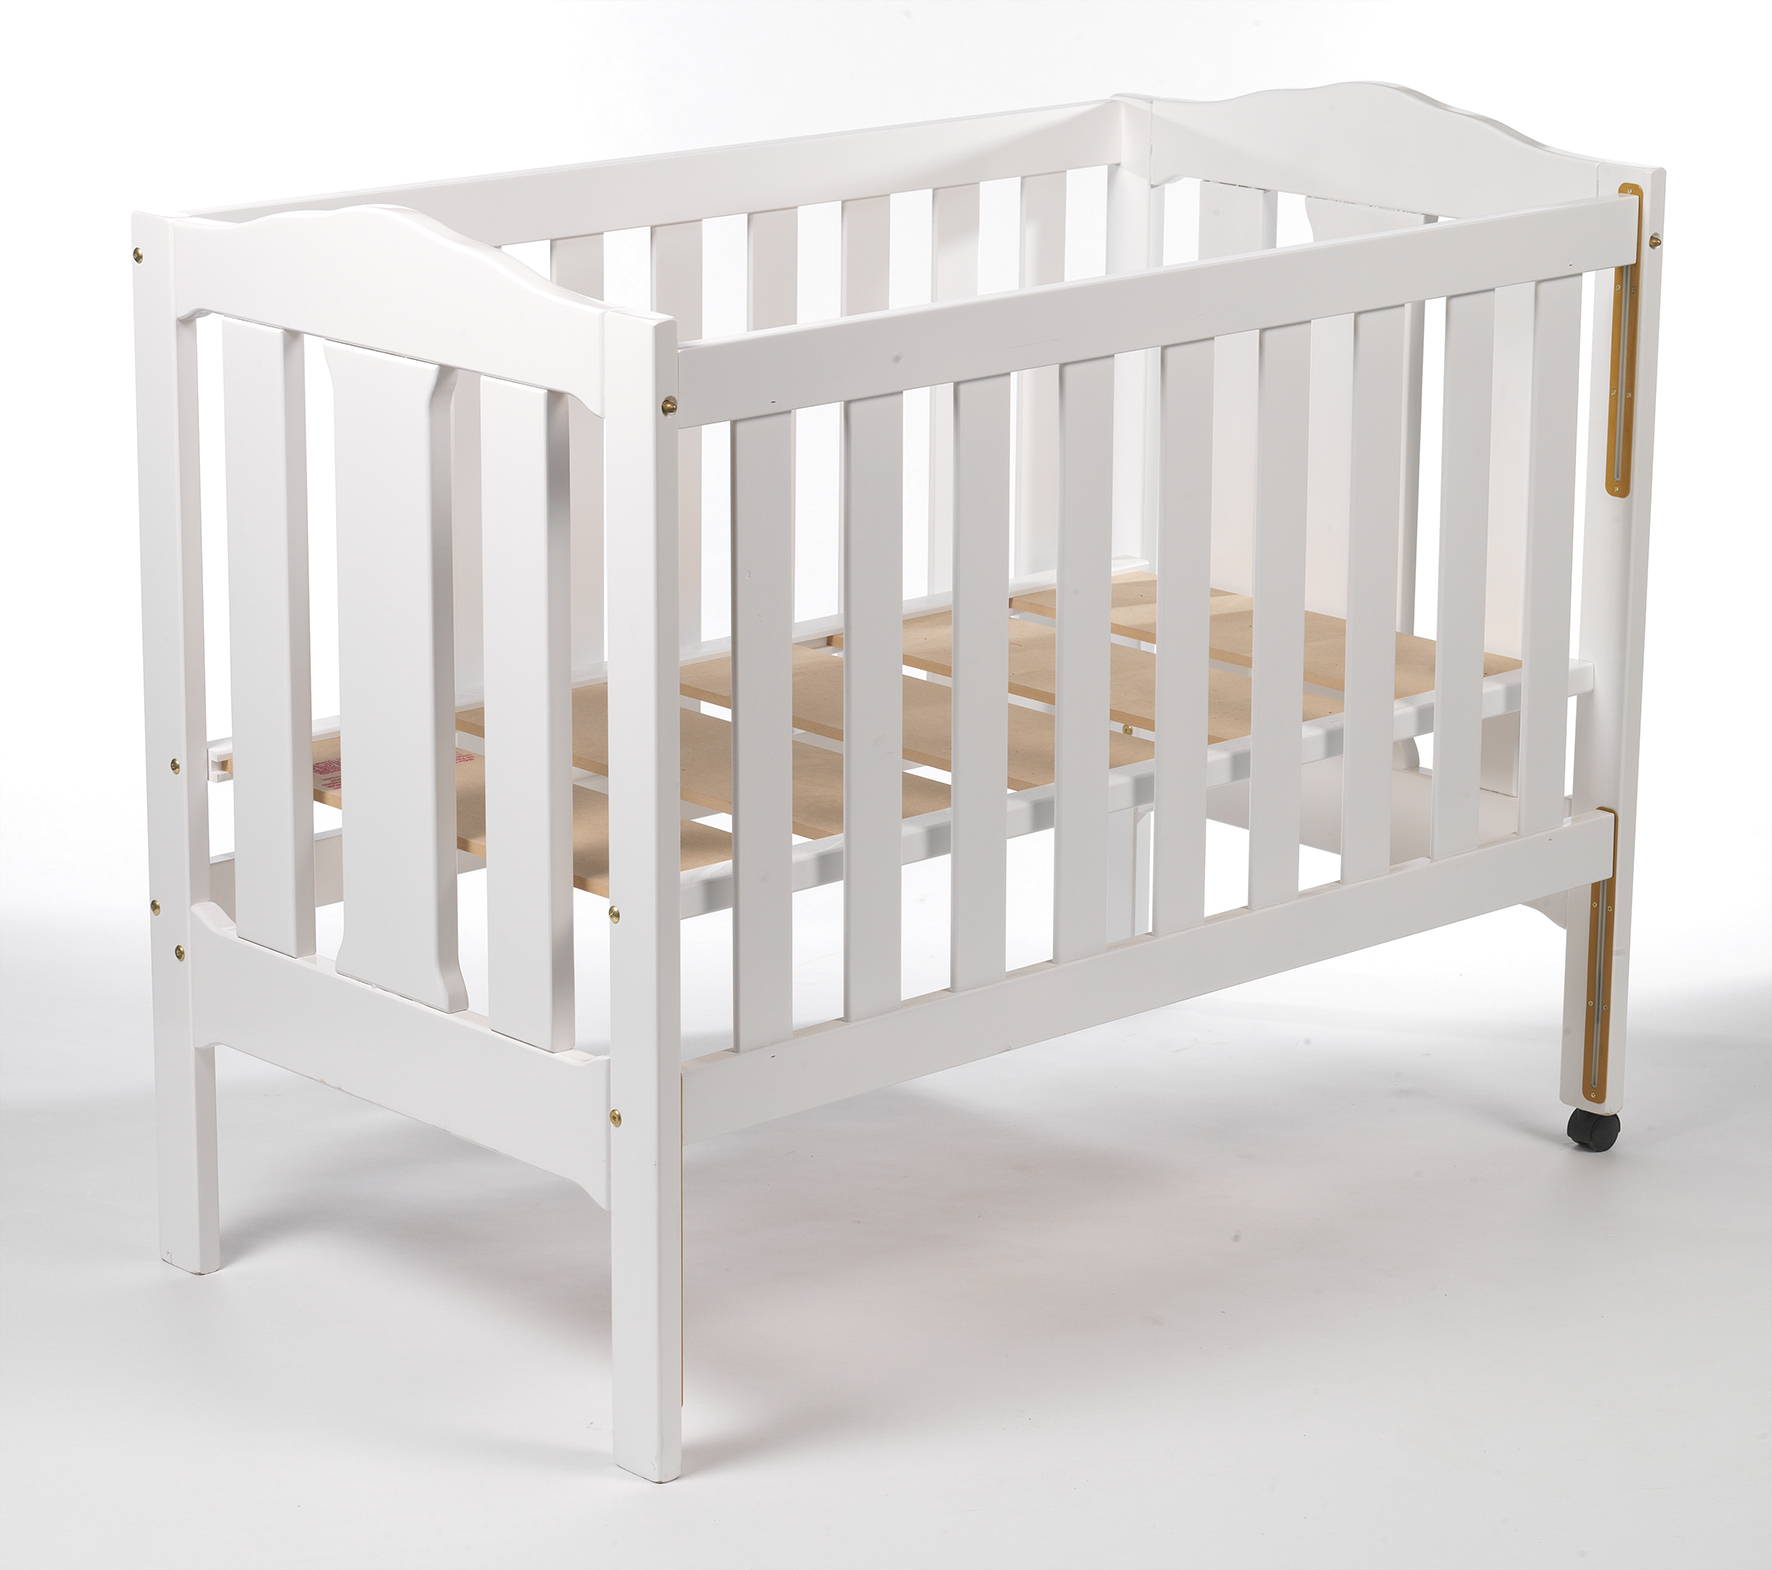 Natural Timber Cot Safe Sleeping Place For Small Children Cribs With Side Protection